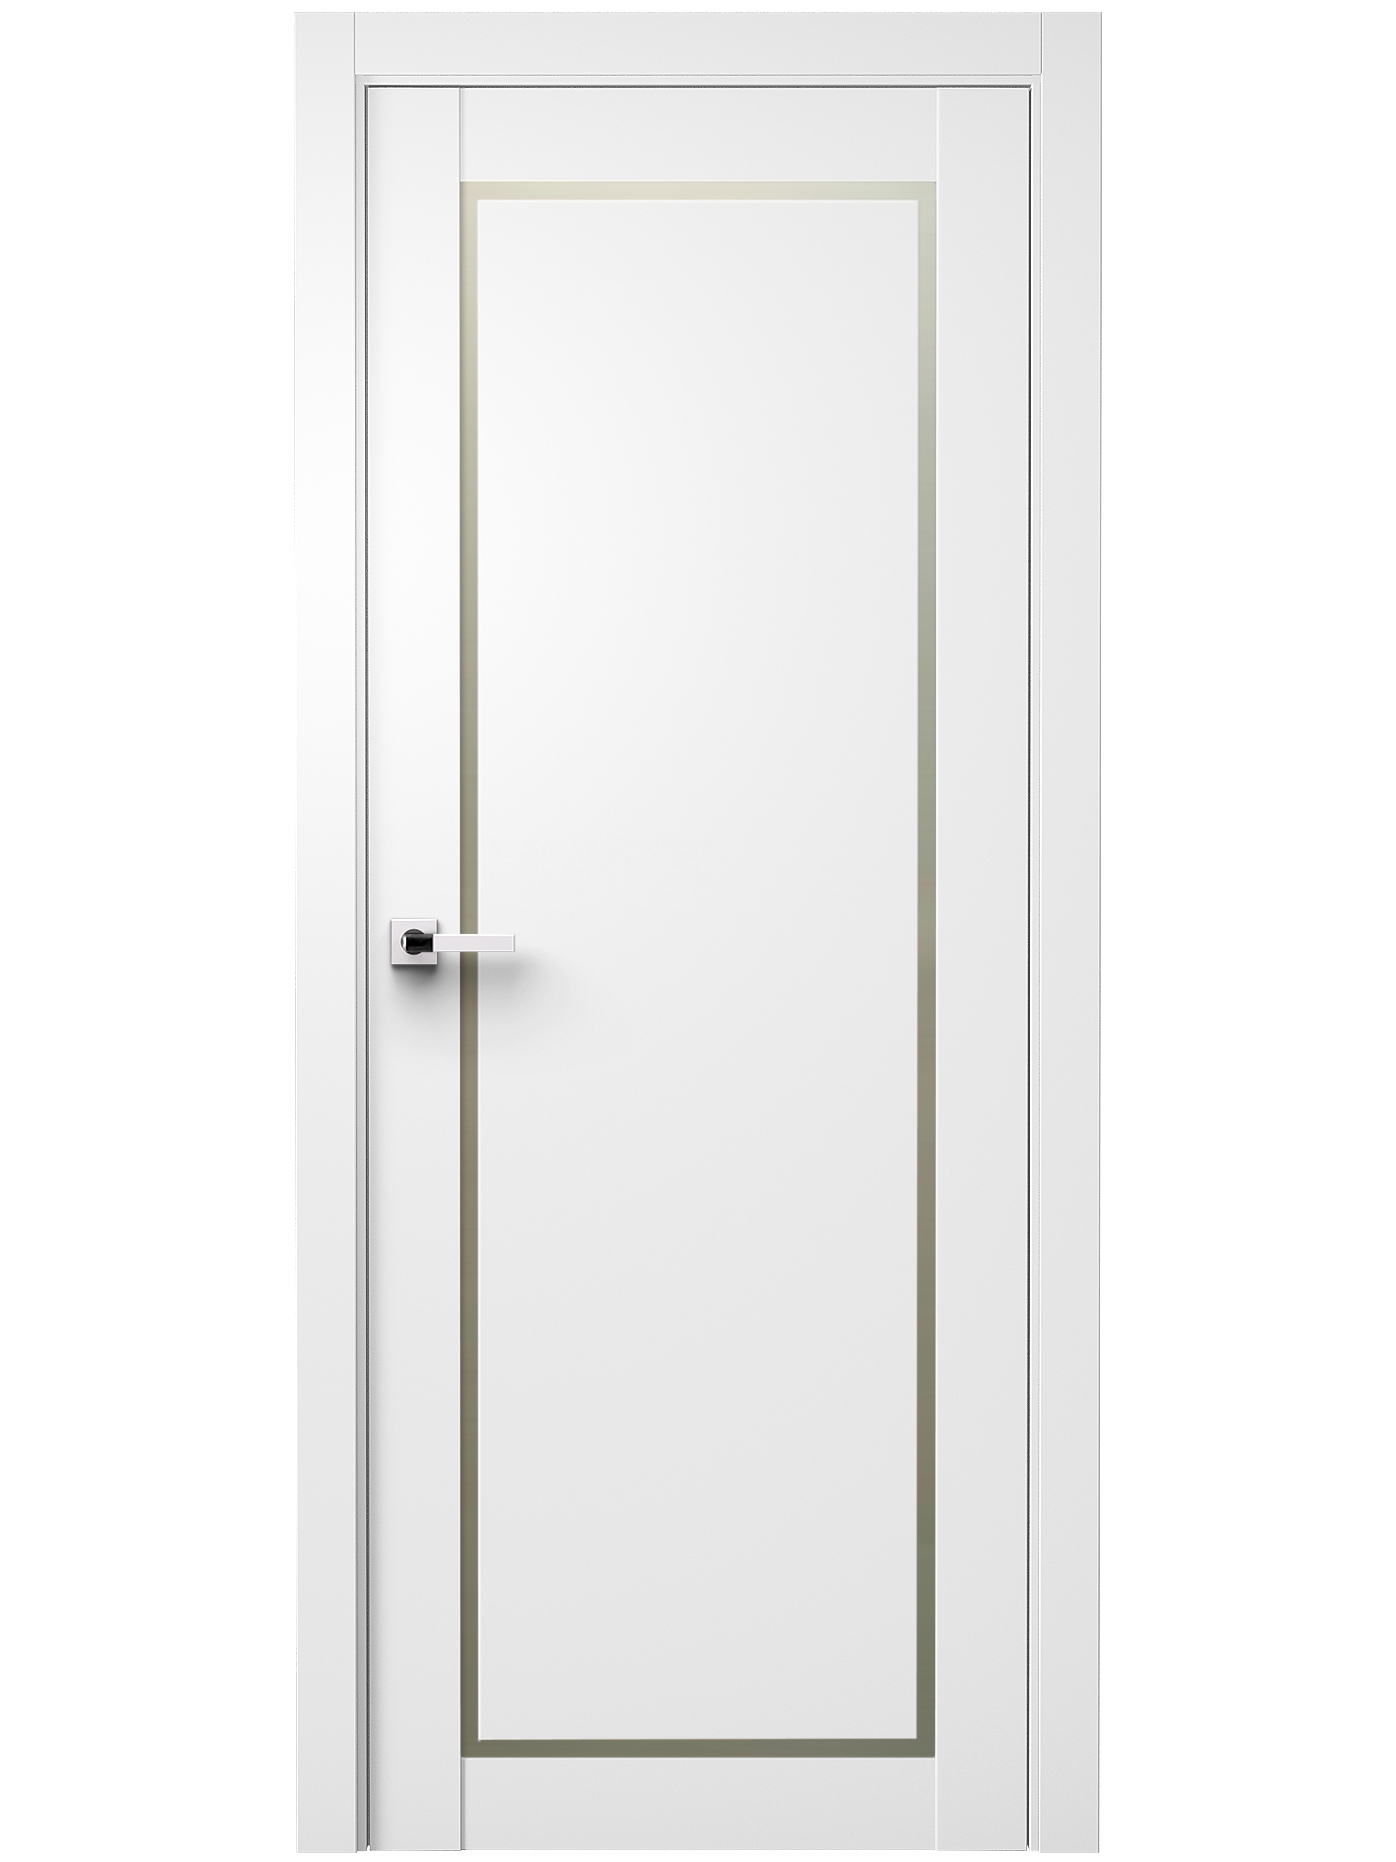 Image Trinity Interior Door Polar White 0